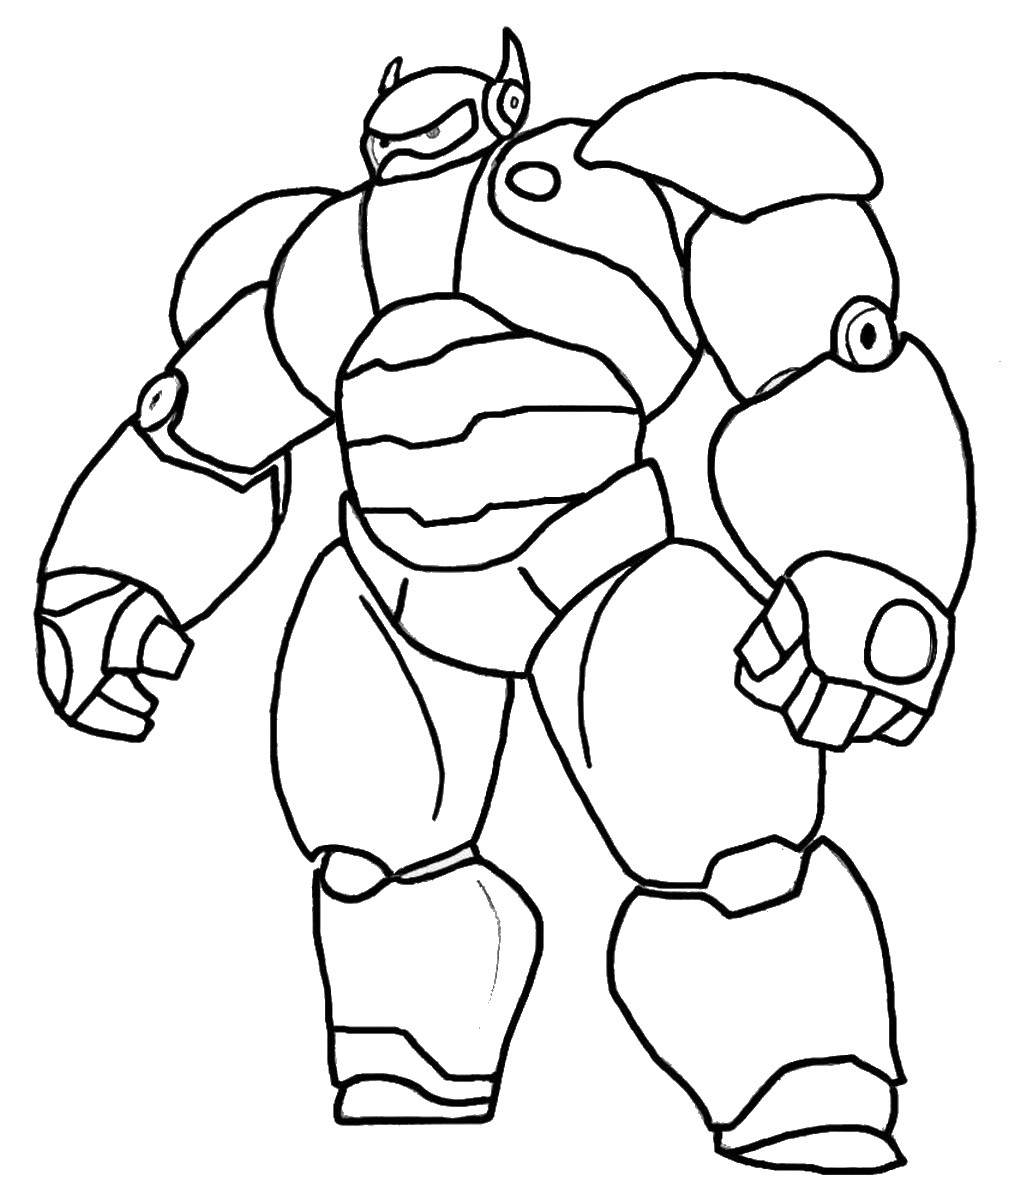 Big Hero 6 Coloring Pages | Birthday Printable